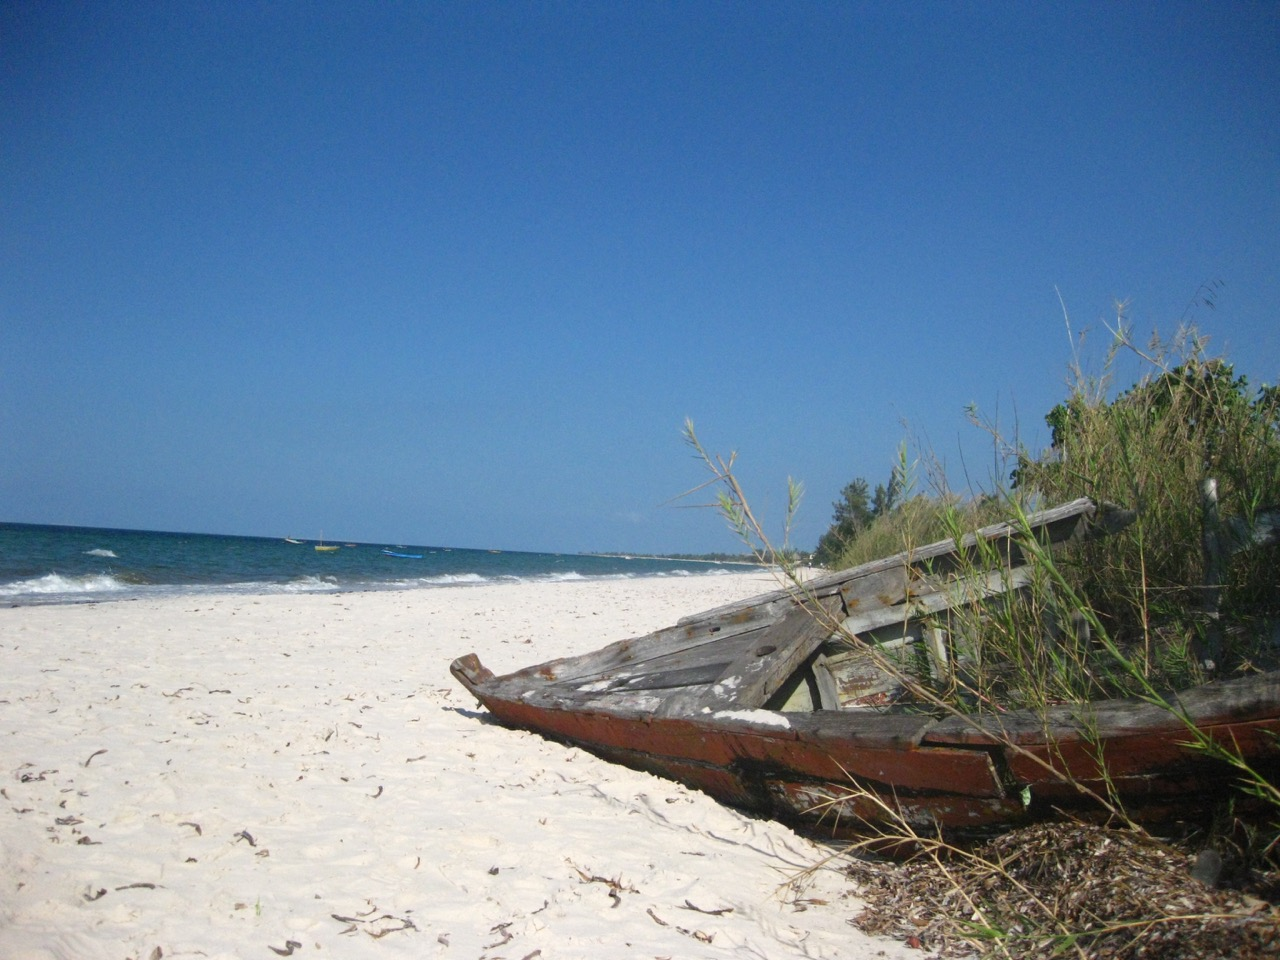 An old wooden boat covered in weeds on an african beach